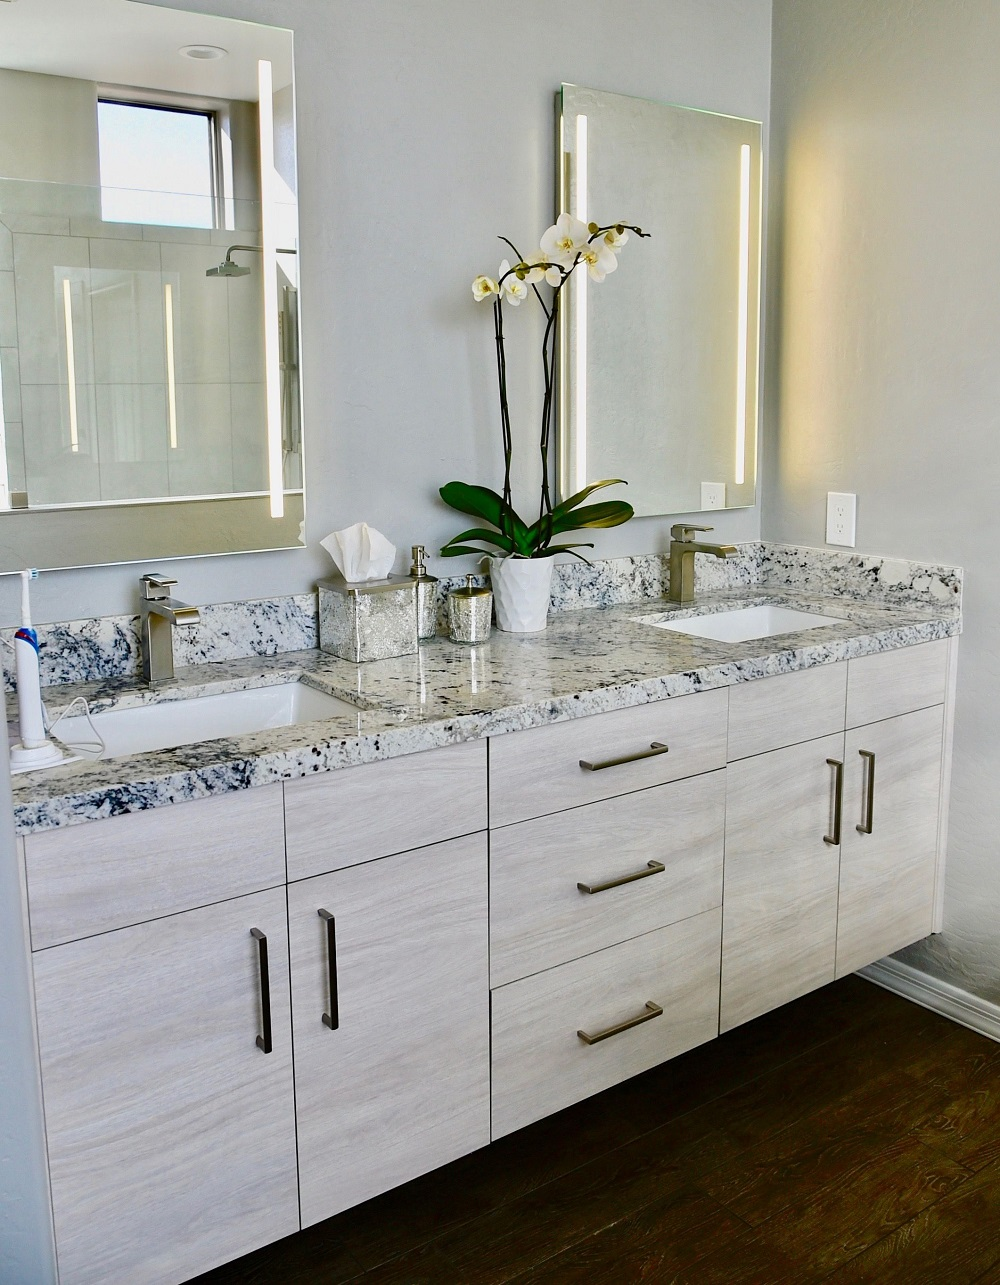 t3-121 White ice granite countertops, inspiration and tips for using them